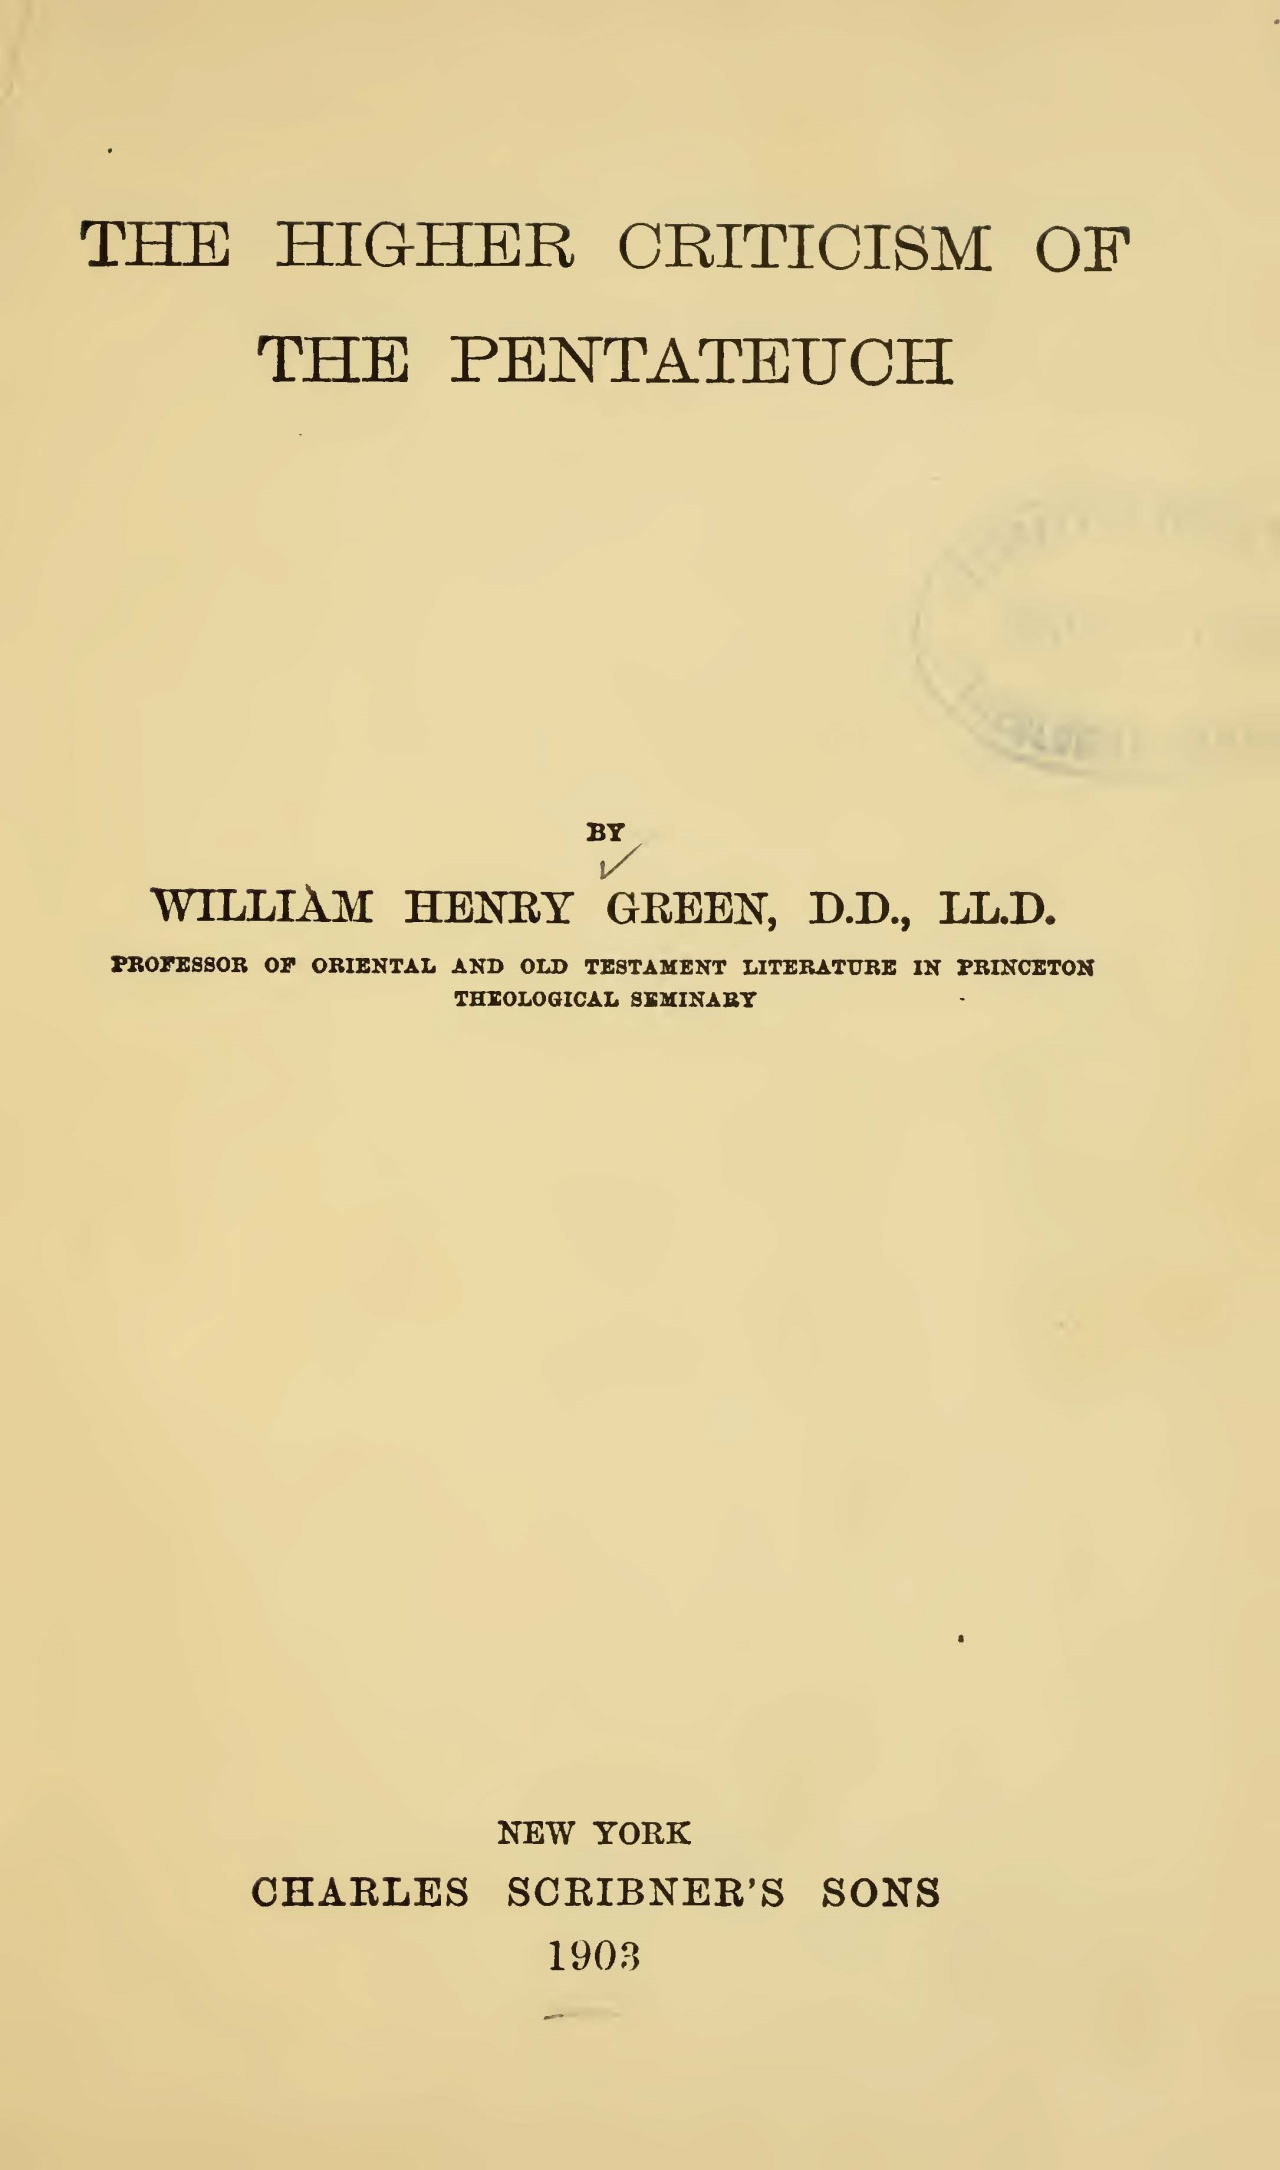 Green, William Henry, The Higher Criticism of the Pentateuch Title Page.jpg